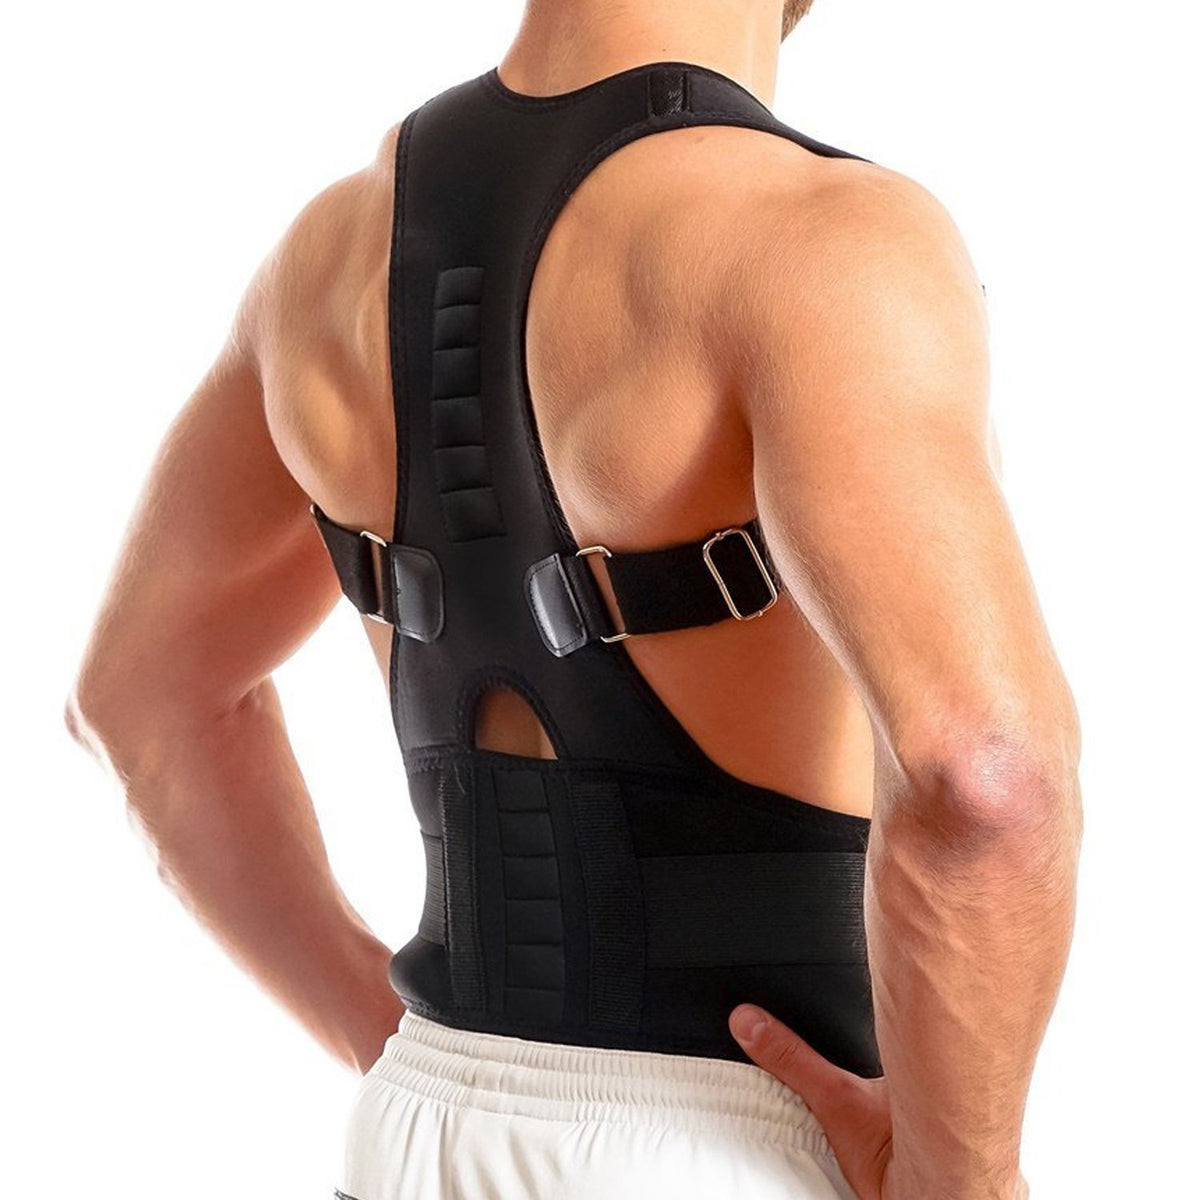 Back Amp Posture Supports And Braces Stabilitypro